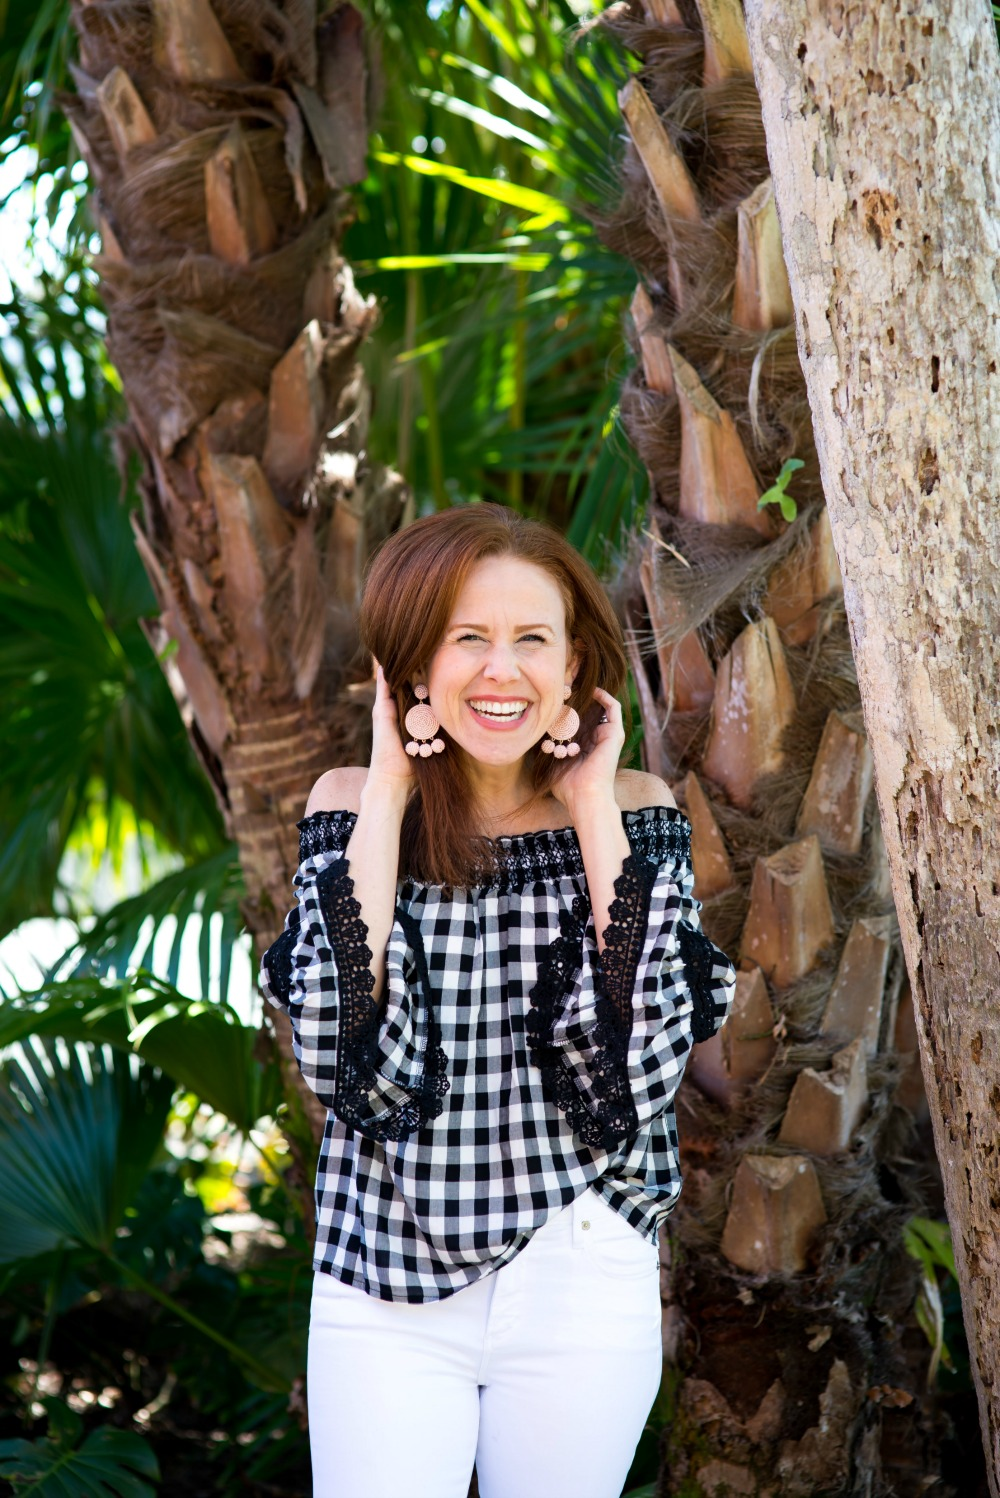 Easy spring date night outfit ideas // the modern savvy - Cute Plaid Top for Spring by popular Florida style blogger The Modern Savvy